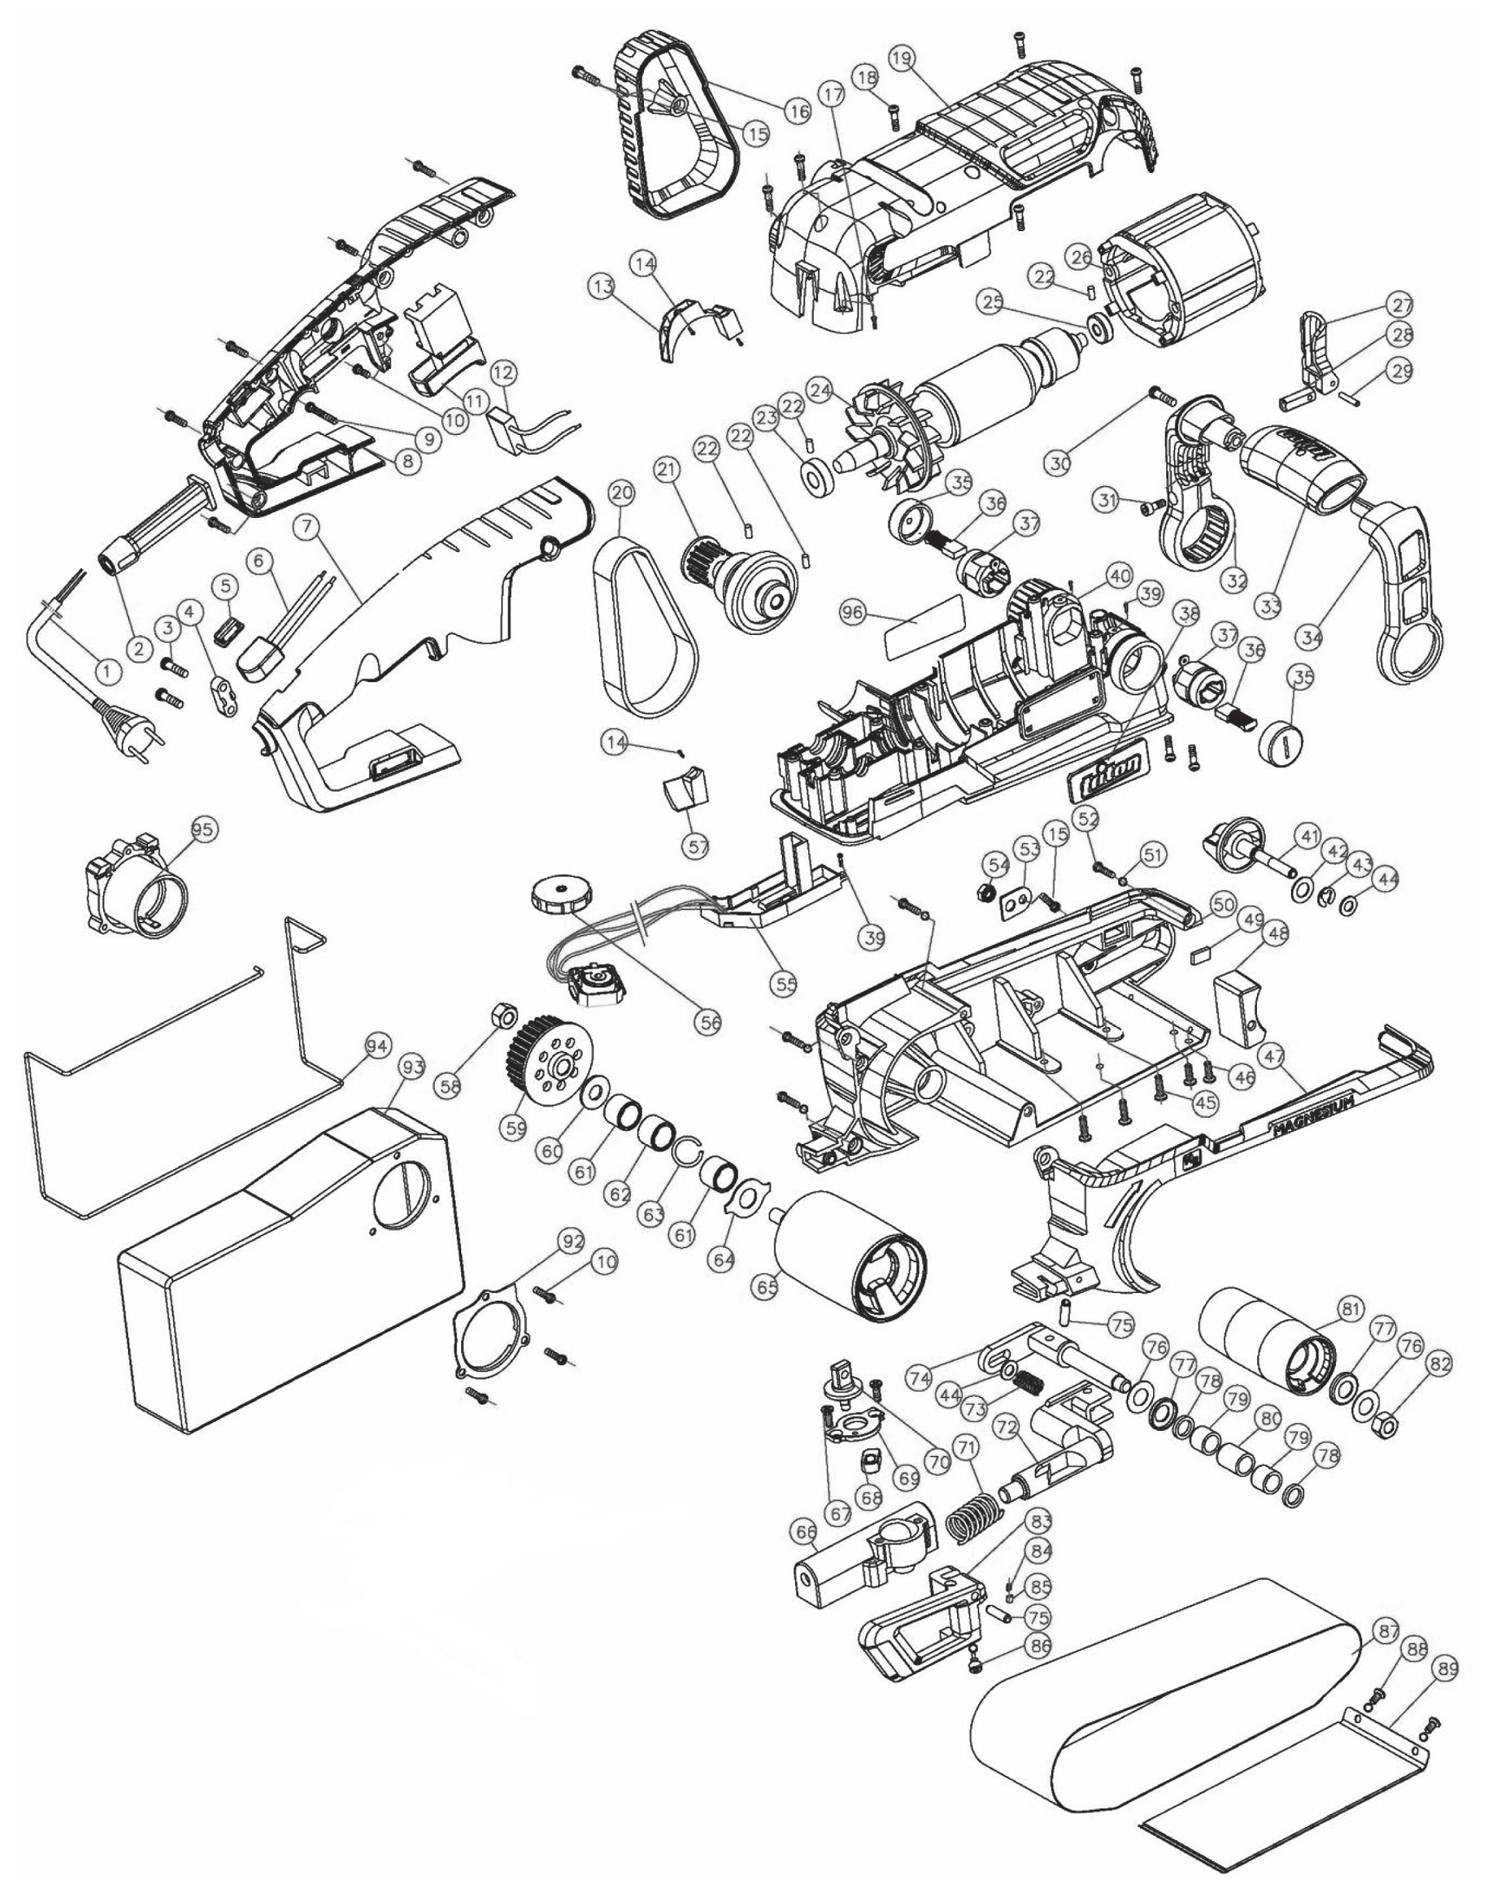 Hilti Dsh 700 Parts Diagram Wiring Wiring Diagram Images